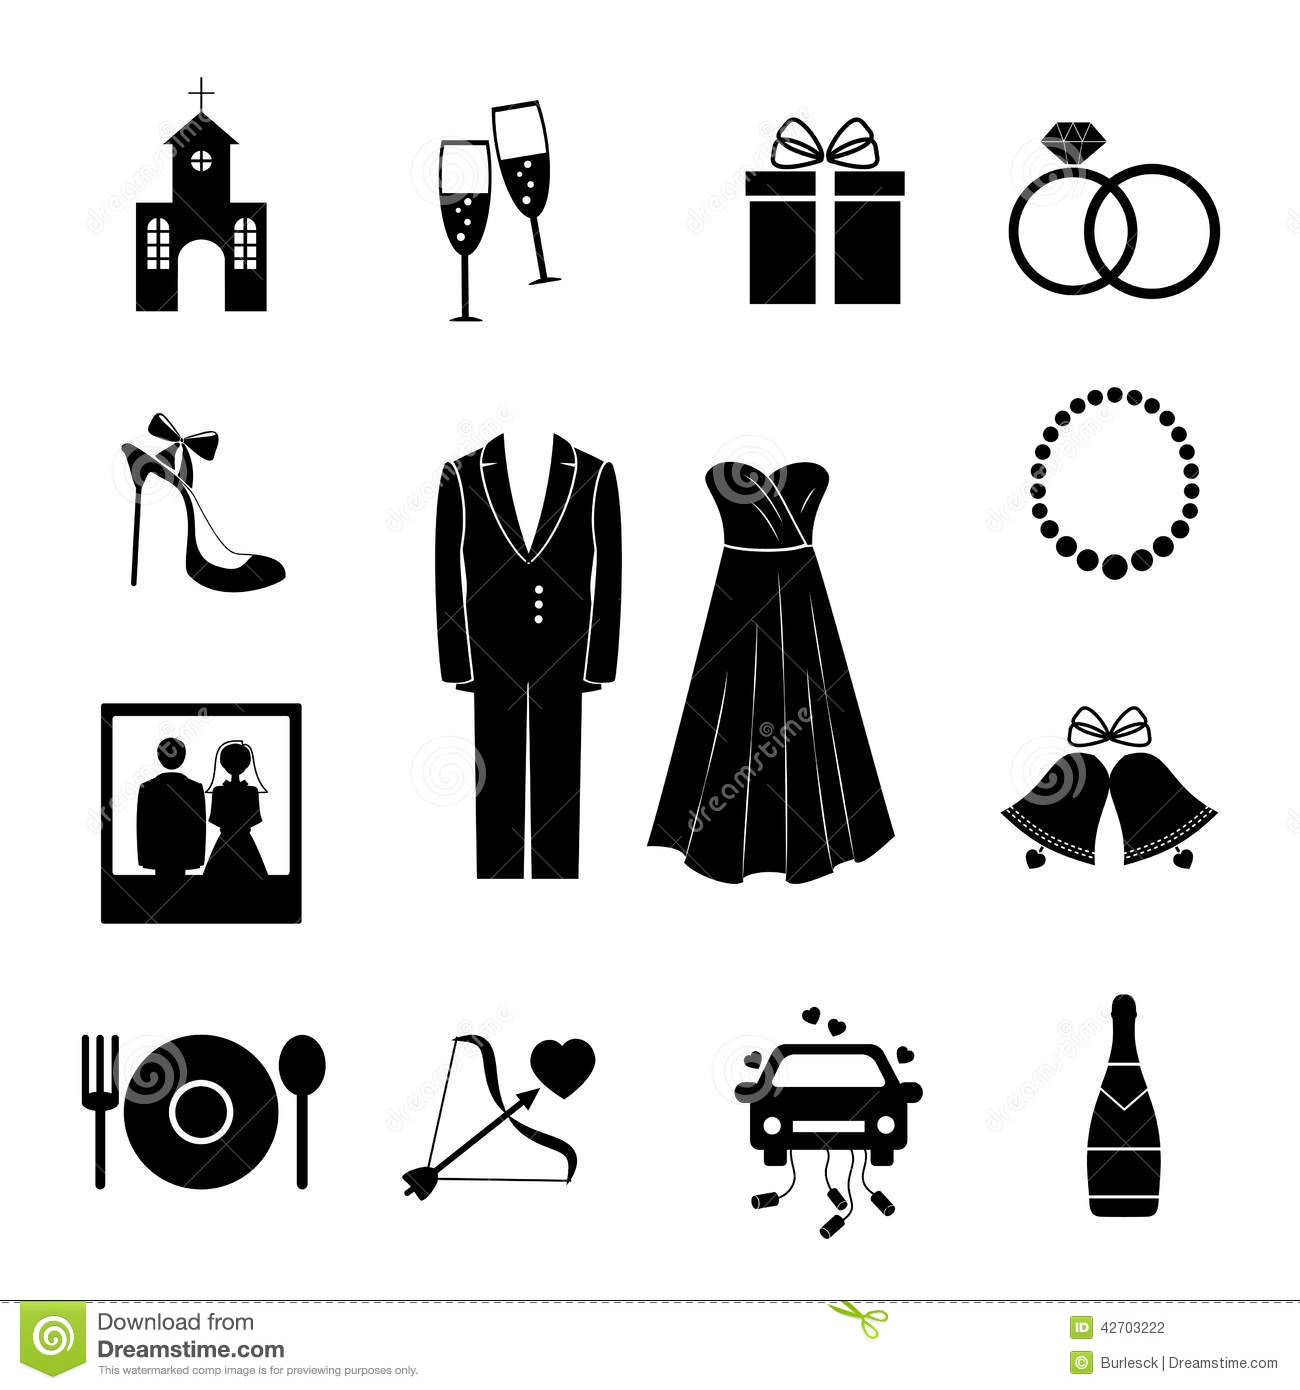 Wedding Hair Style Black Vector Art: Set Of Black Silhouette Wedding Icons Stock Vector